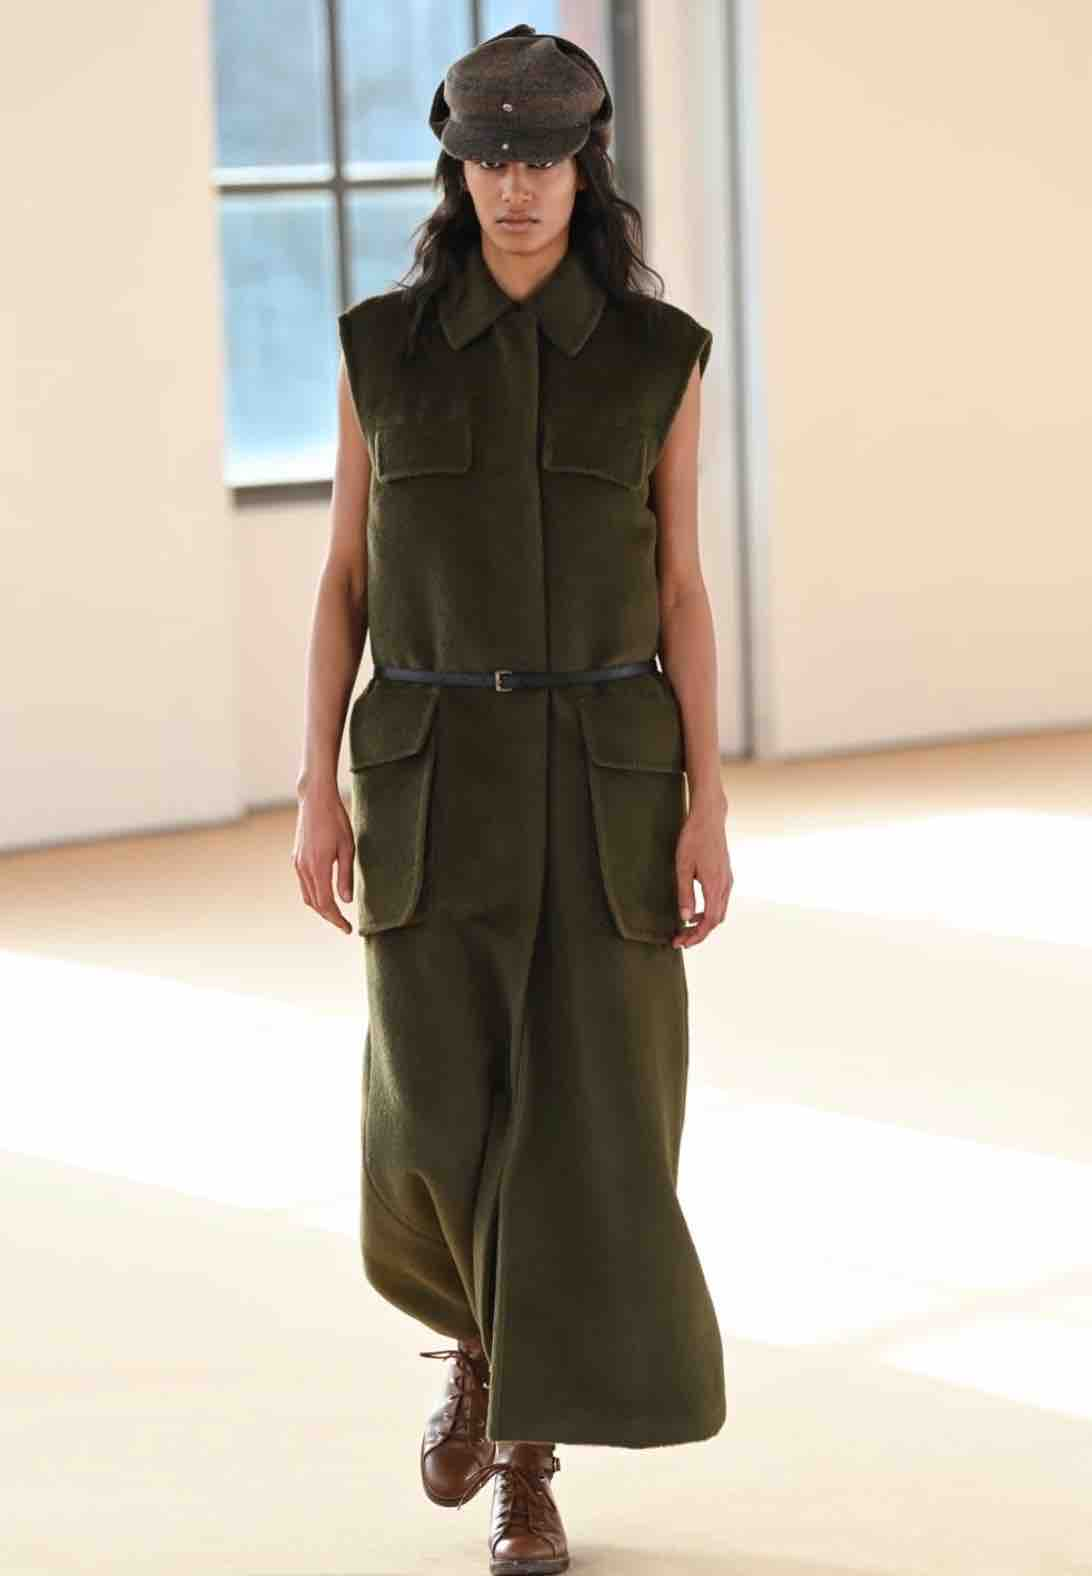 Max Mara Military Is One Of The Style Trends To Shop For Fall 2021